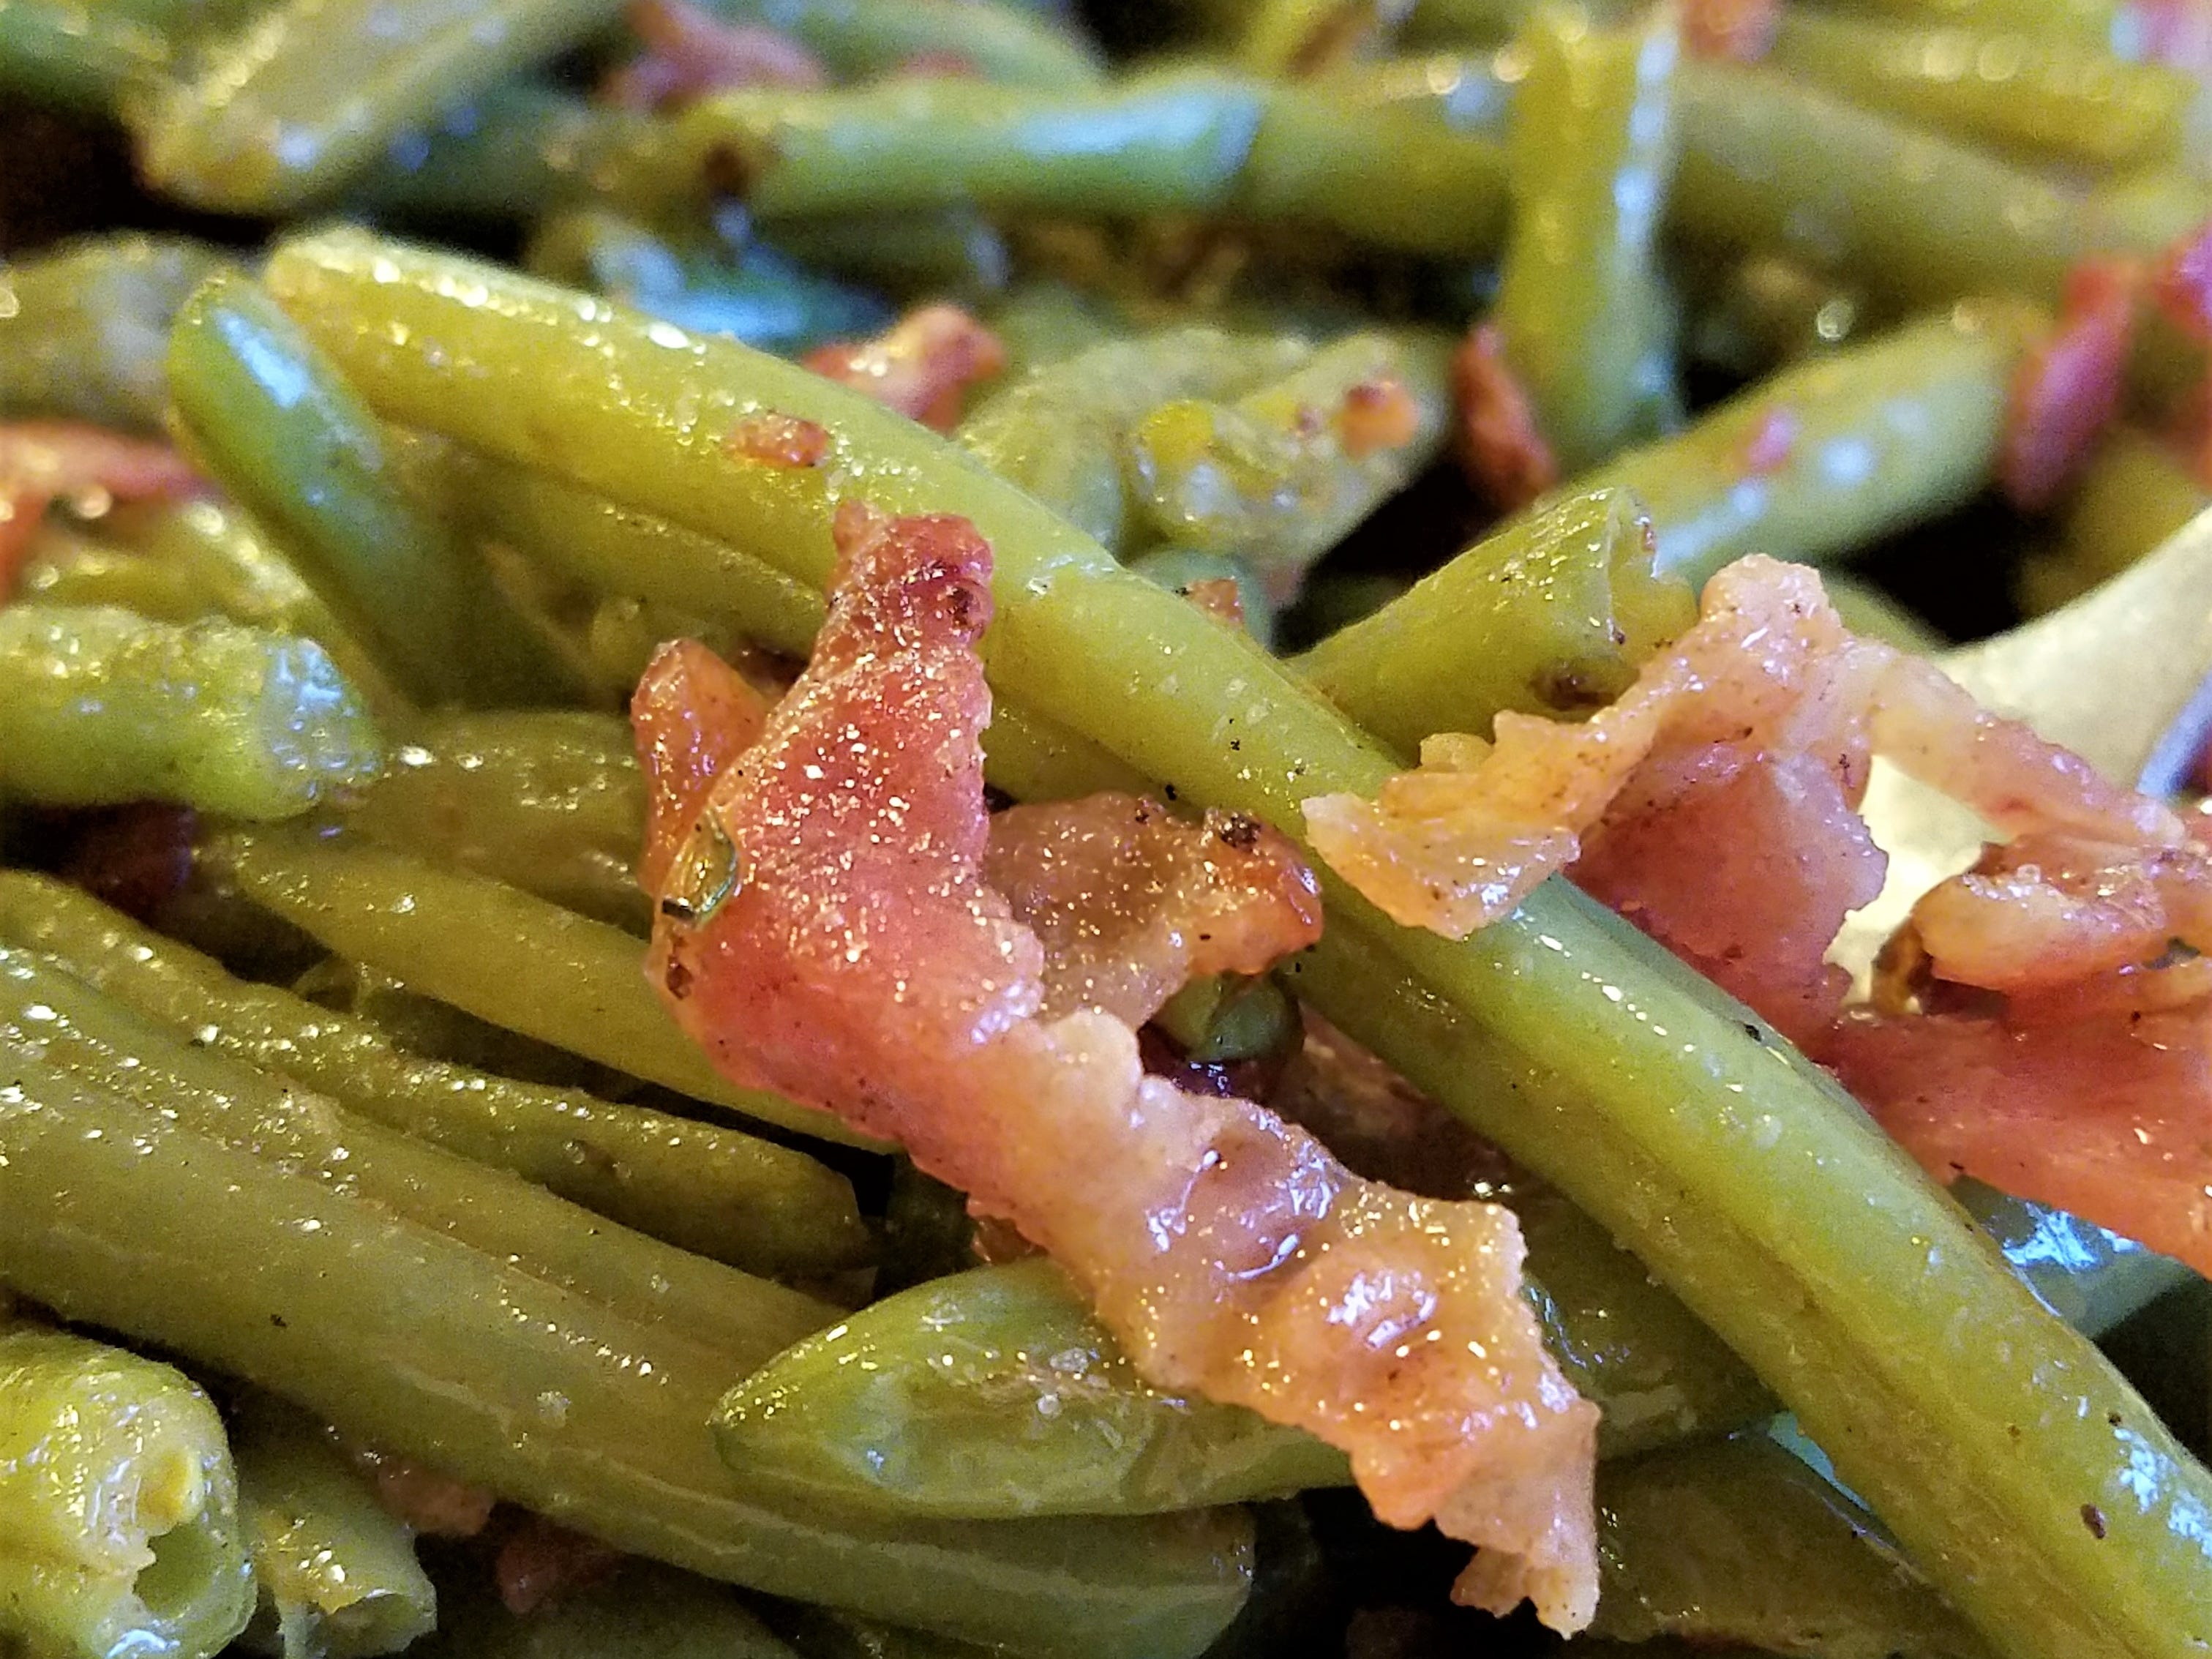 Nellie's green beans are a special treat. They're bright green, lightly cooked, and finished with lots of crispy bacon.